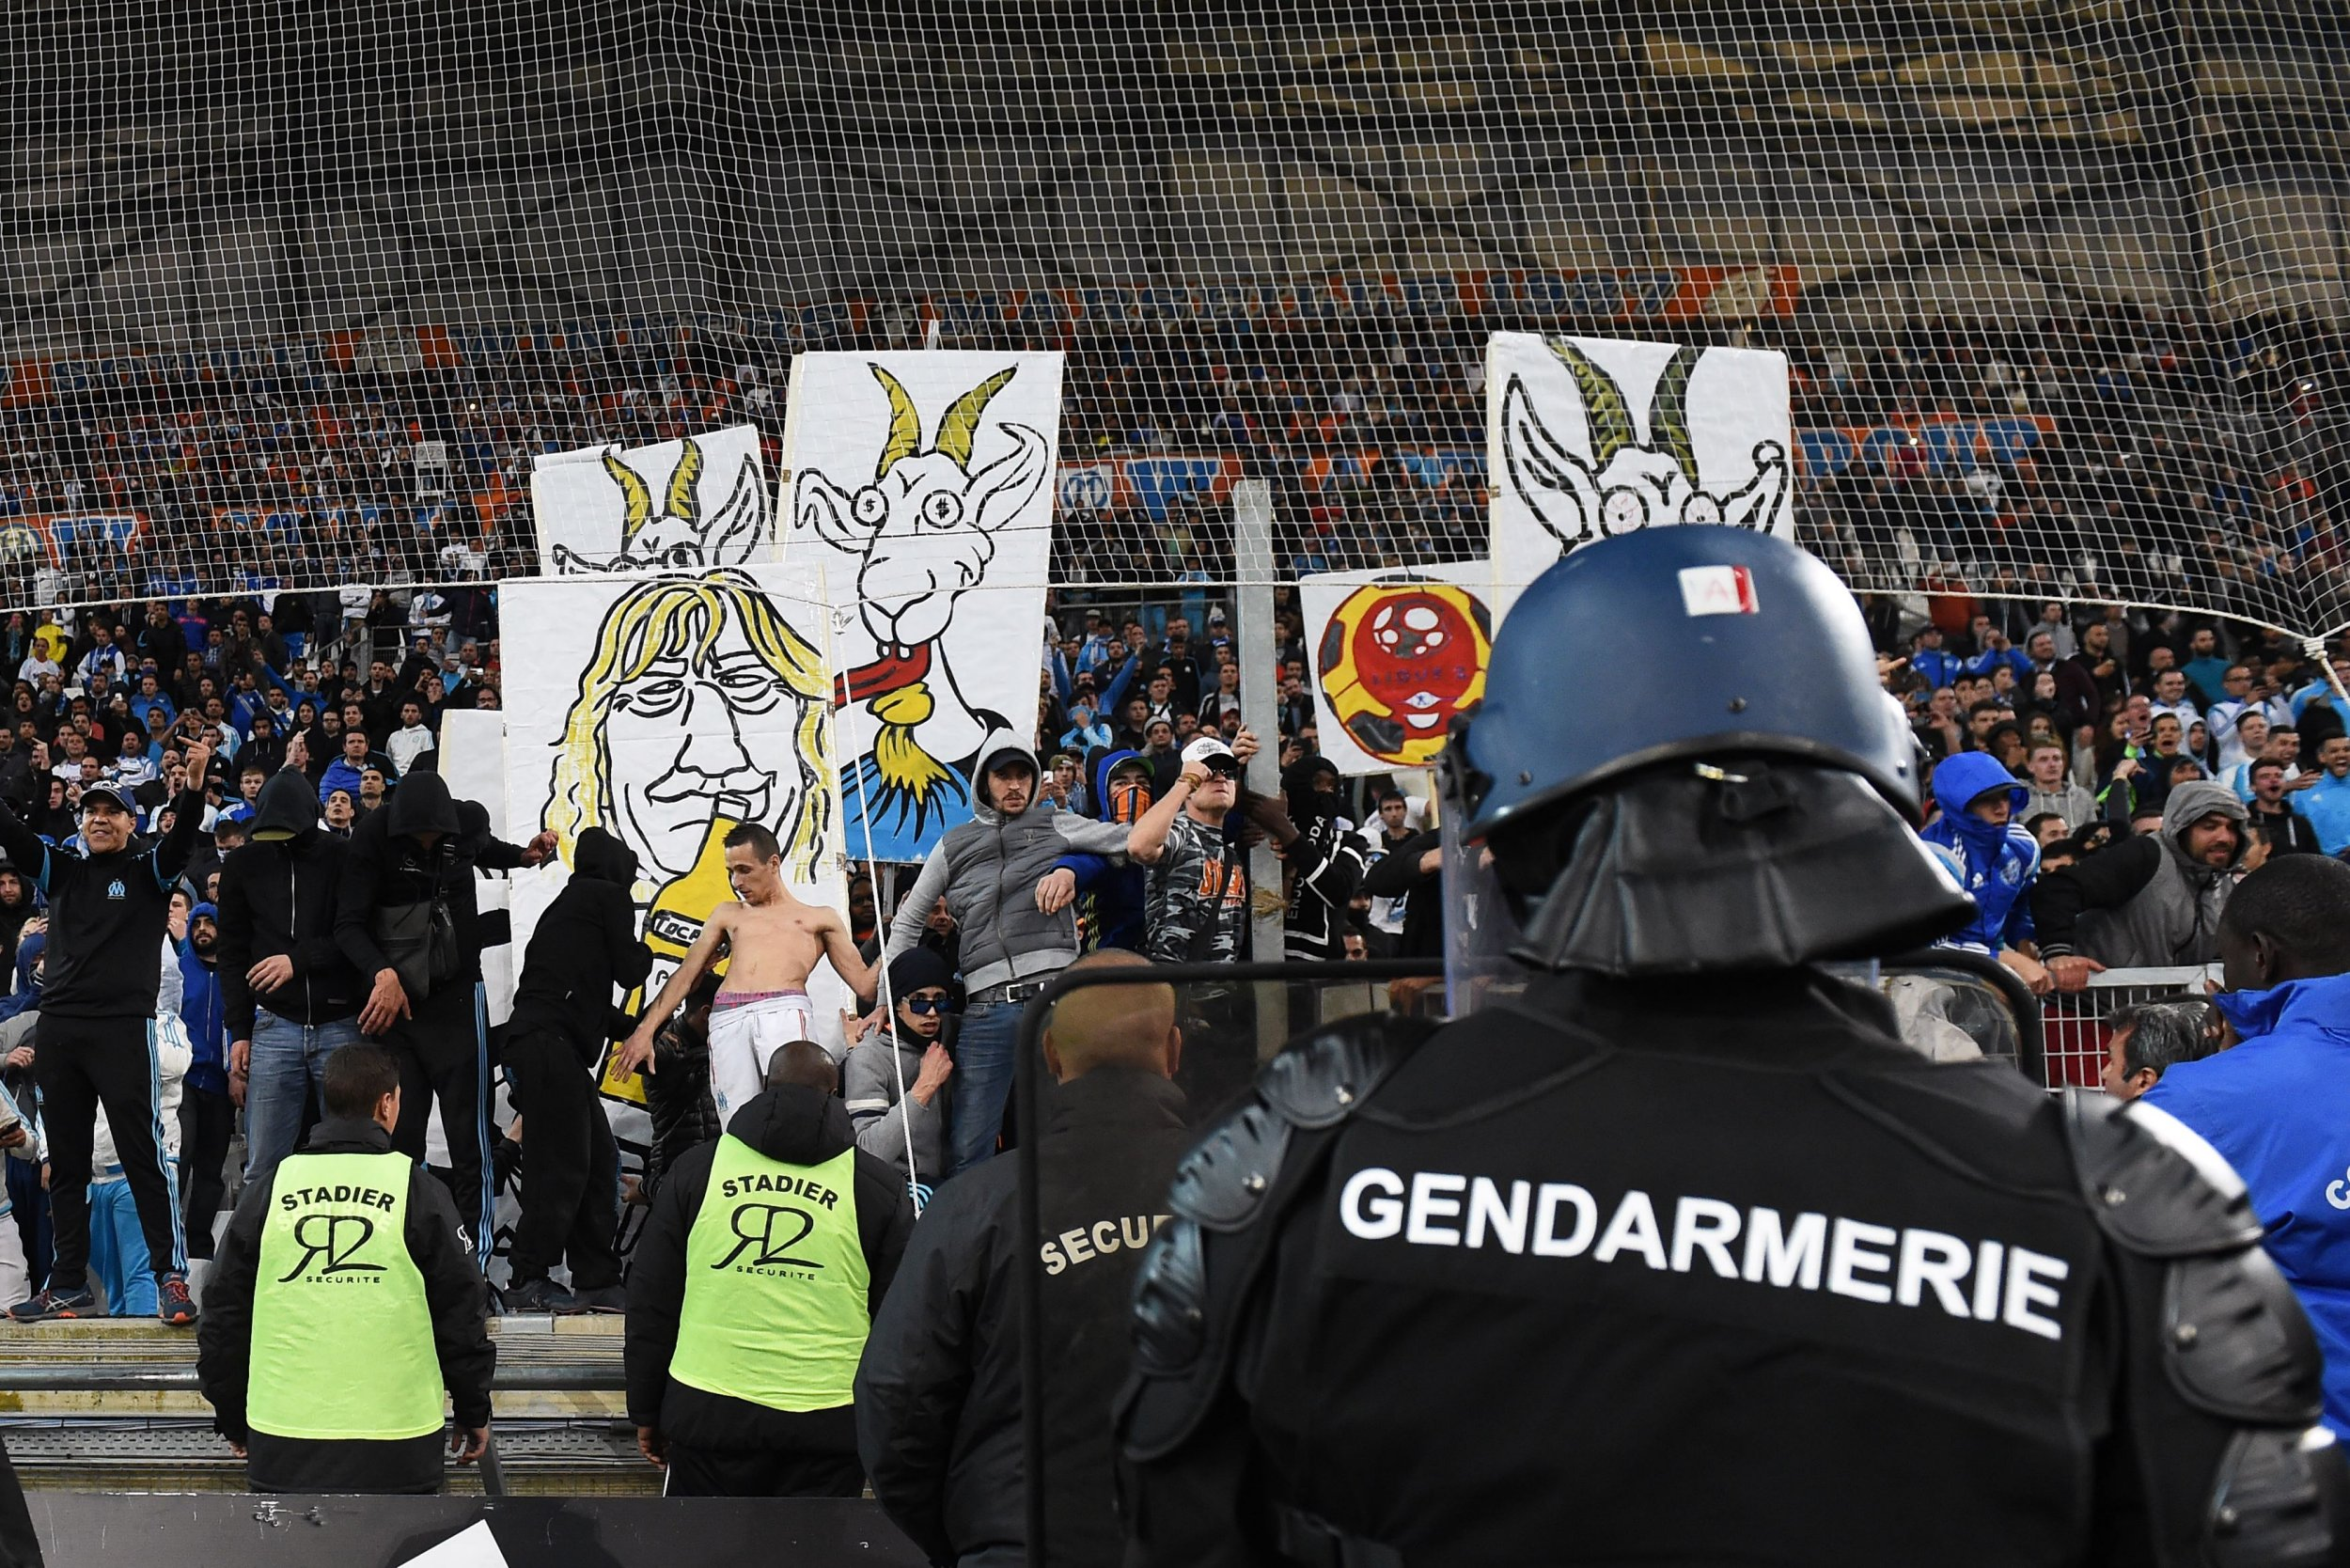 Marseille fans mock their own team by playing Benny Hill music whenever they have possession